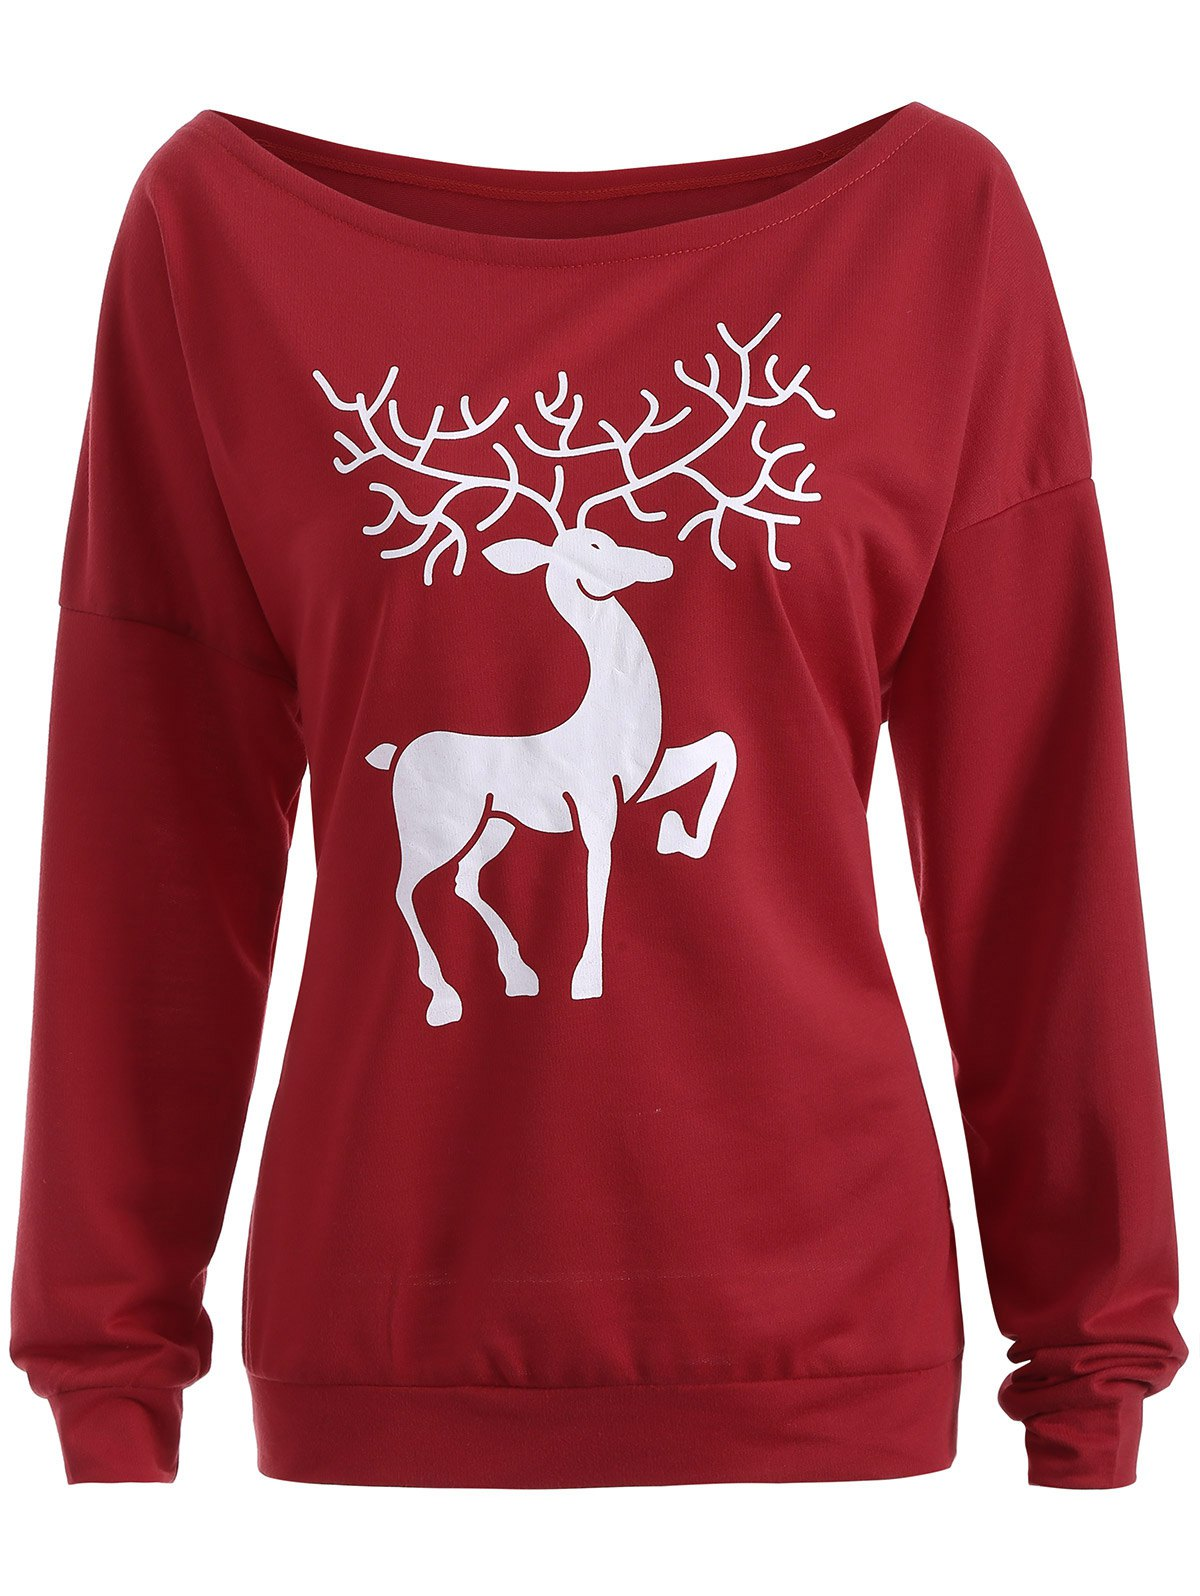 Christmas Reindeer Pullover SweatshirtWOMEN<br><br>Size: XL; Color: WINE RED; Material: Polyester,Spandex; Shirt Length: Regular; Sleeve Length: Full; Style: Streetwear; Pattern Style: Print; Season: Fall,Spring; Weight: 0.470kg; Package Contents: 1 x Sweatshirt;